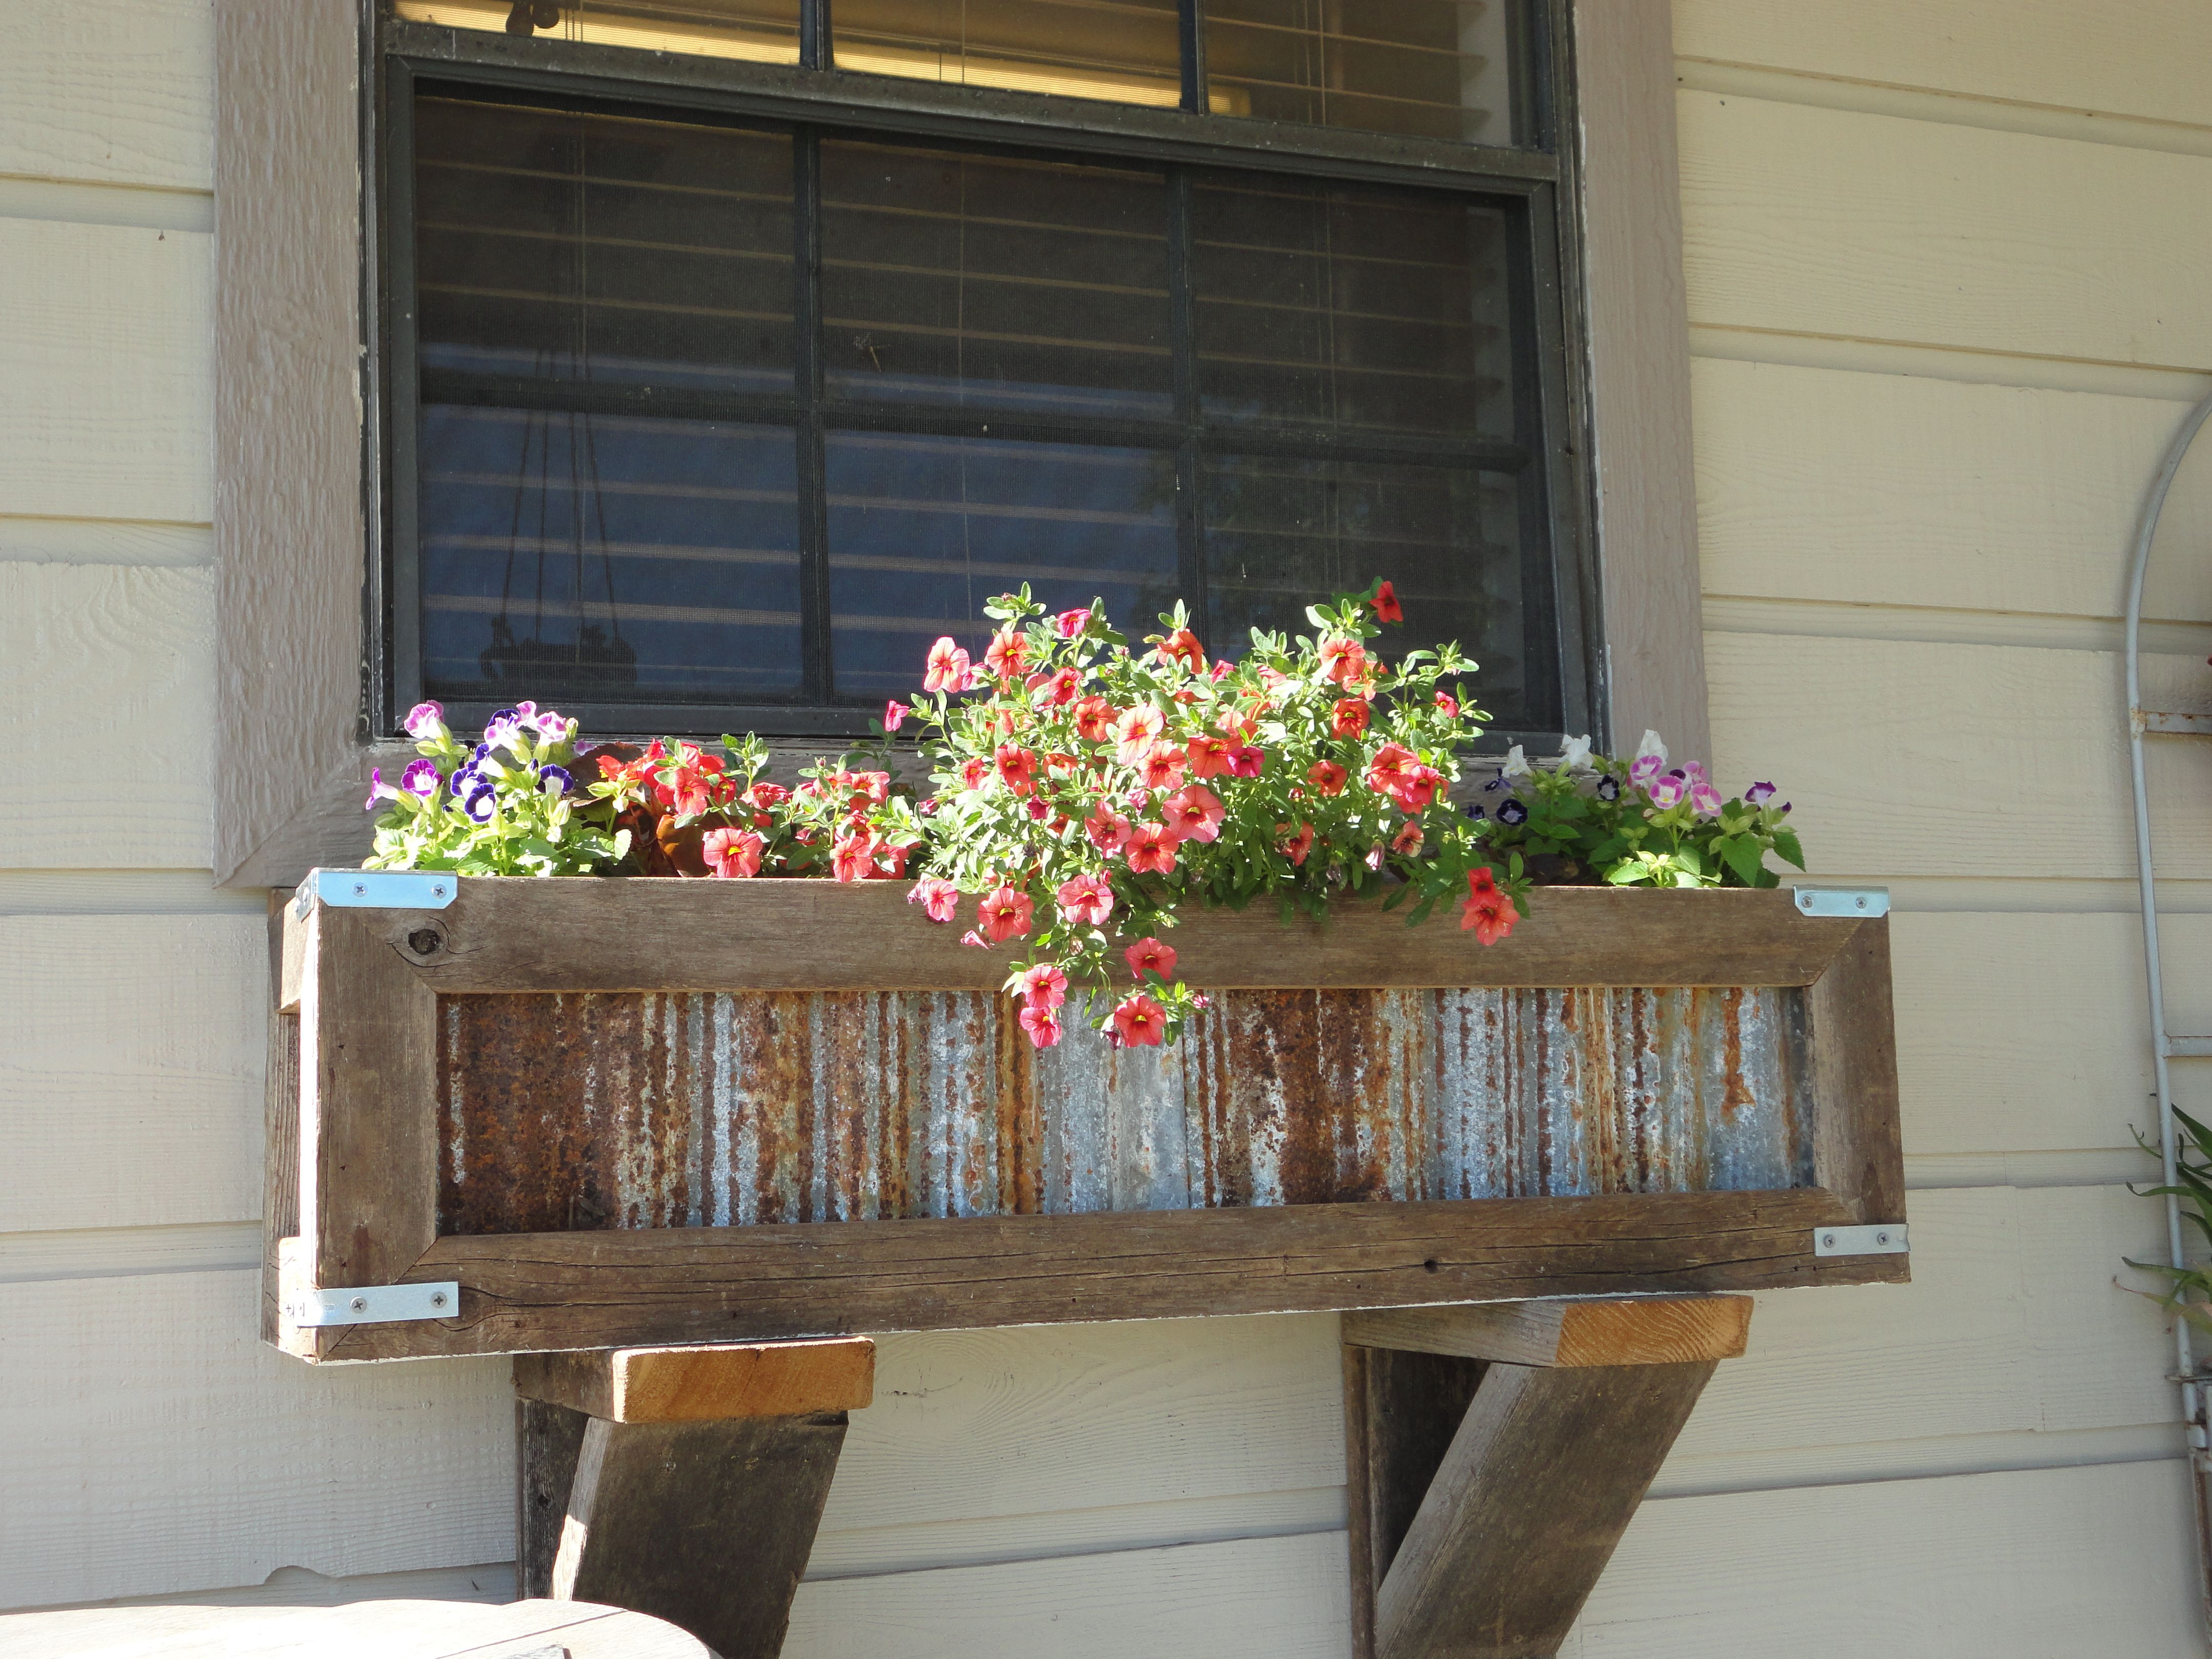 Handcrafted Rustic Window Box Planter for kitchen window